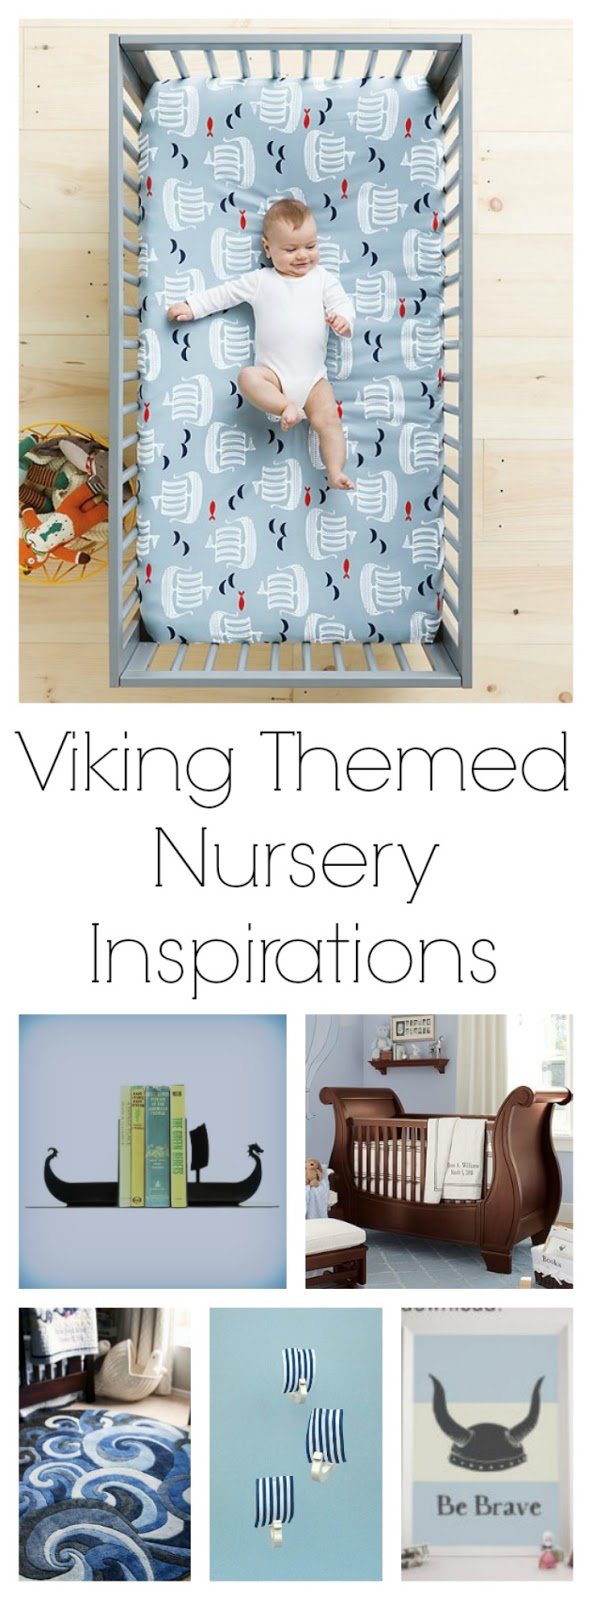 Viking Themed Nursery Ideas